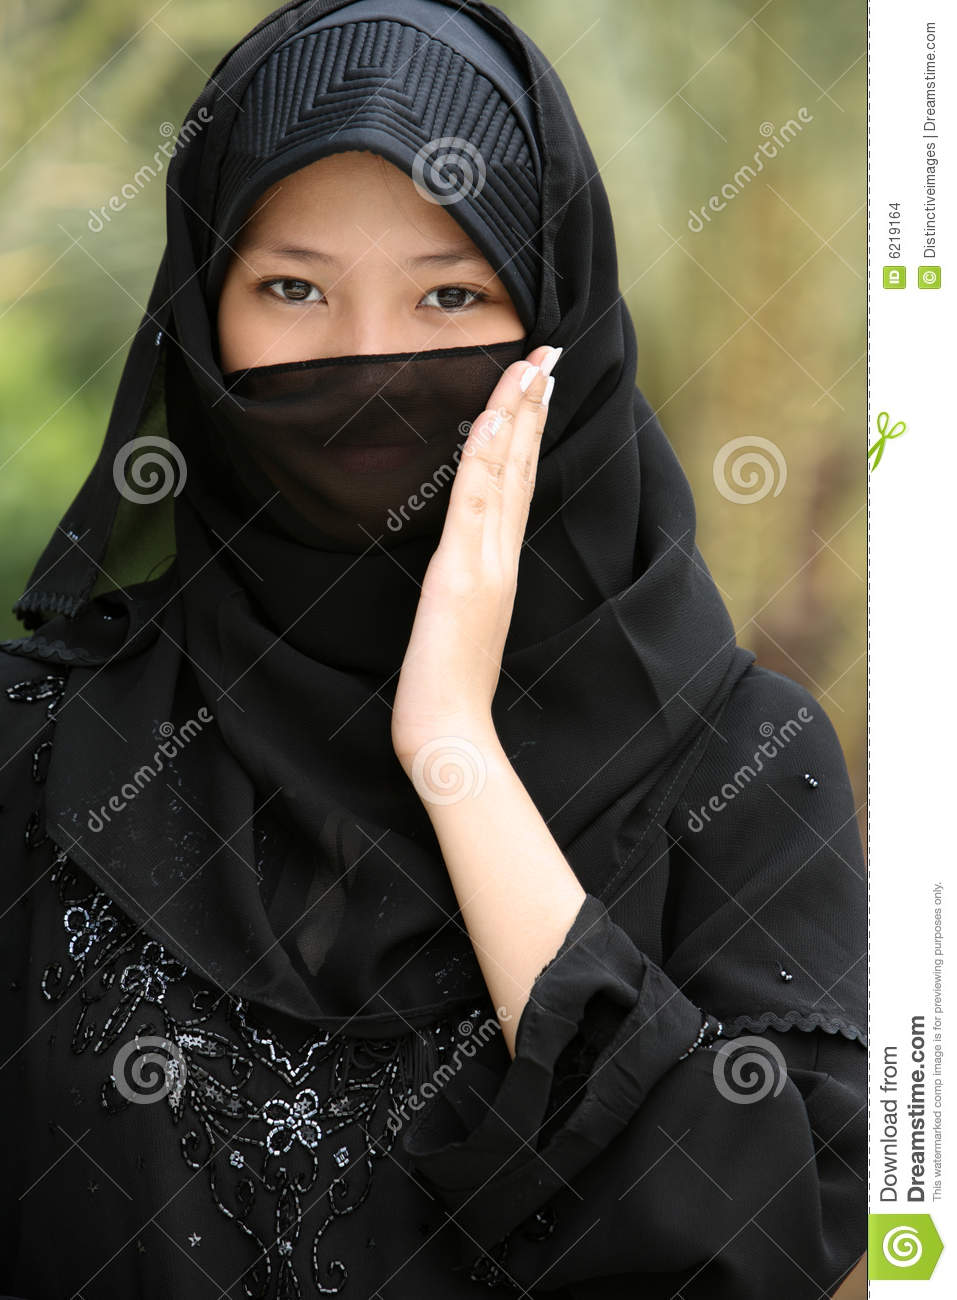 dewittville muslim girl personals Muslim dating at muslimacom sign up in a misunderstanding of what online dating is muslim online dating opens up a whole new a girl aged 23 years old.